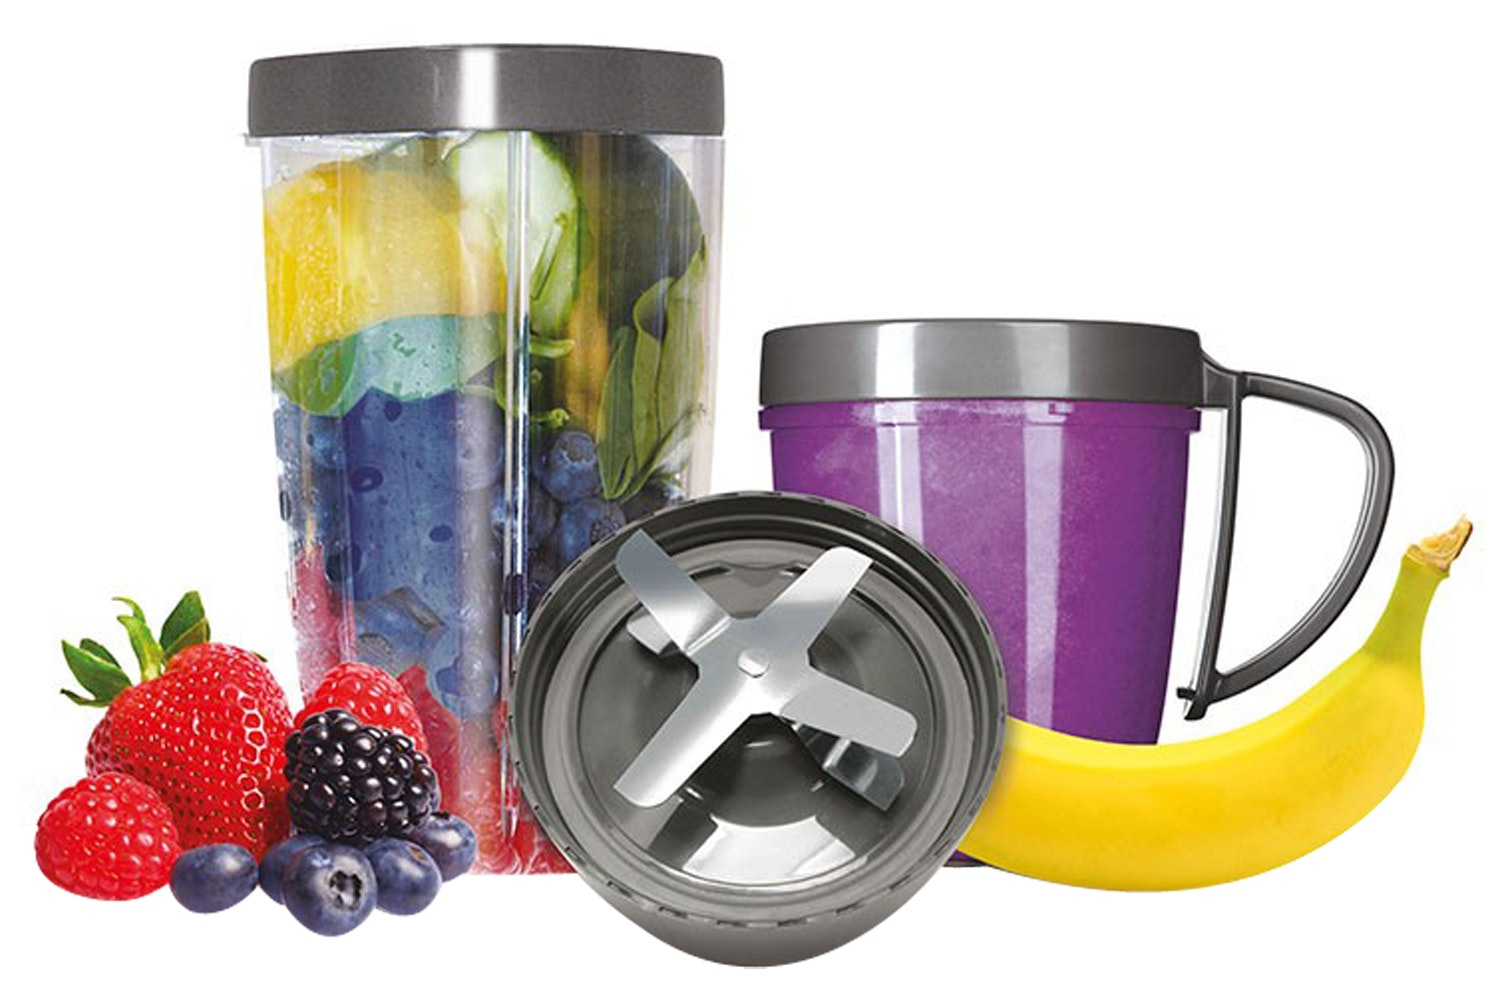 Nutribullet Accessory Kit | NBLUK